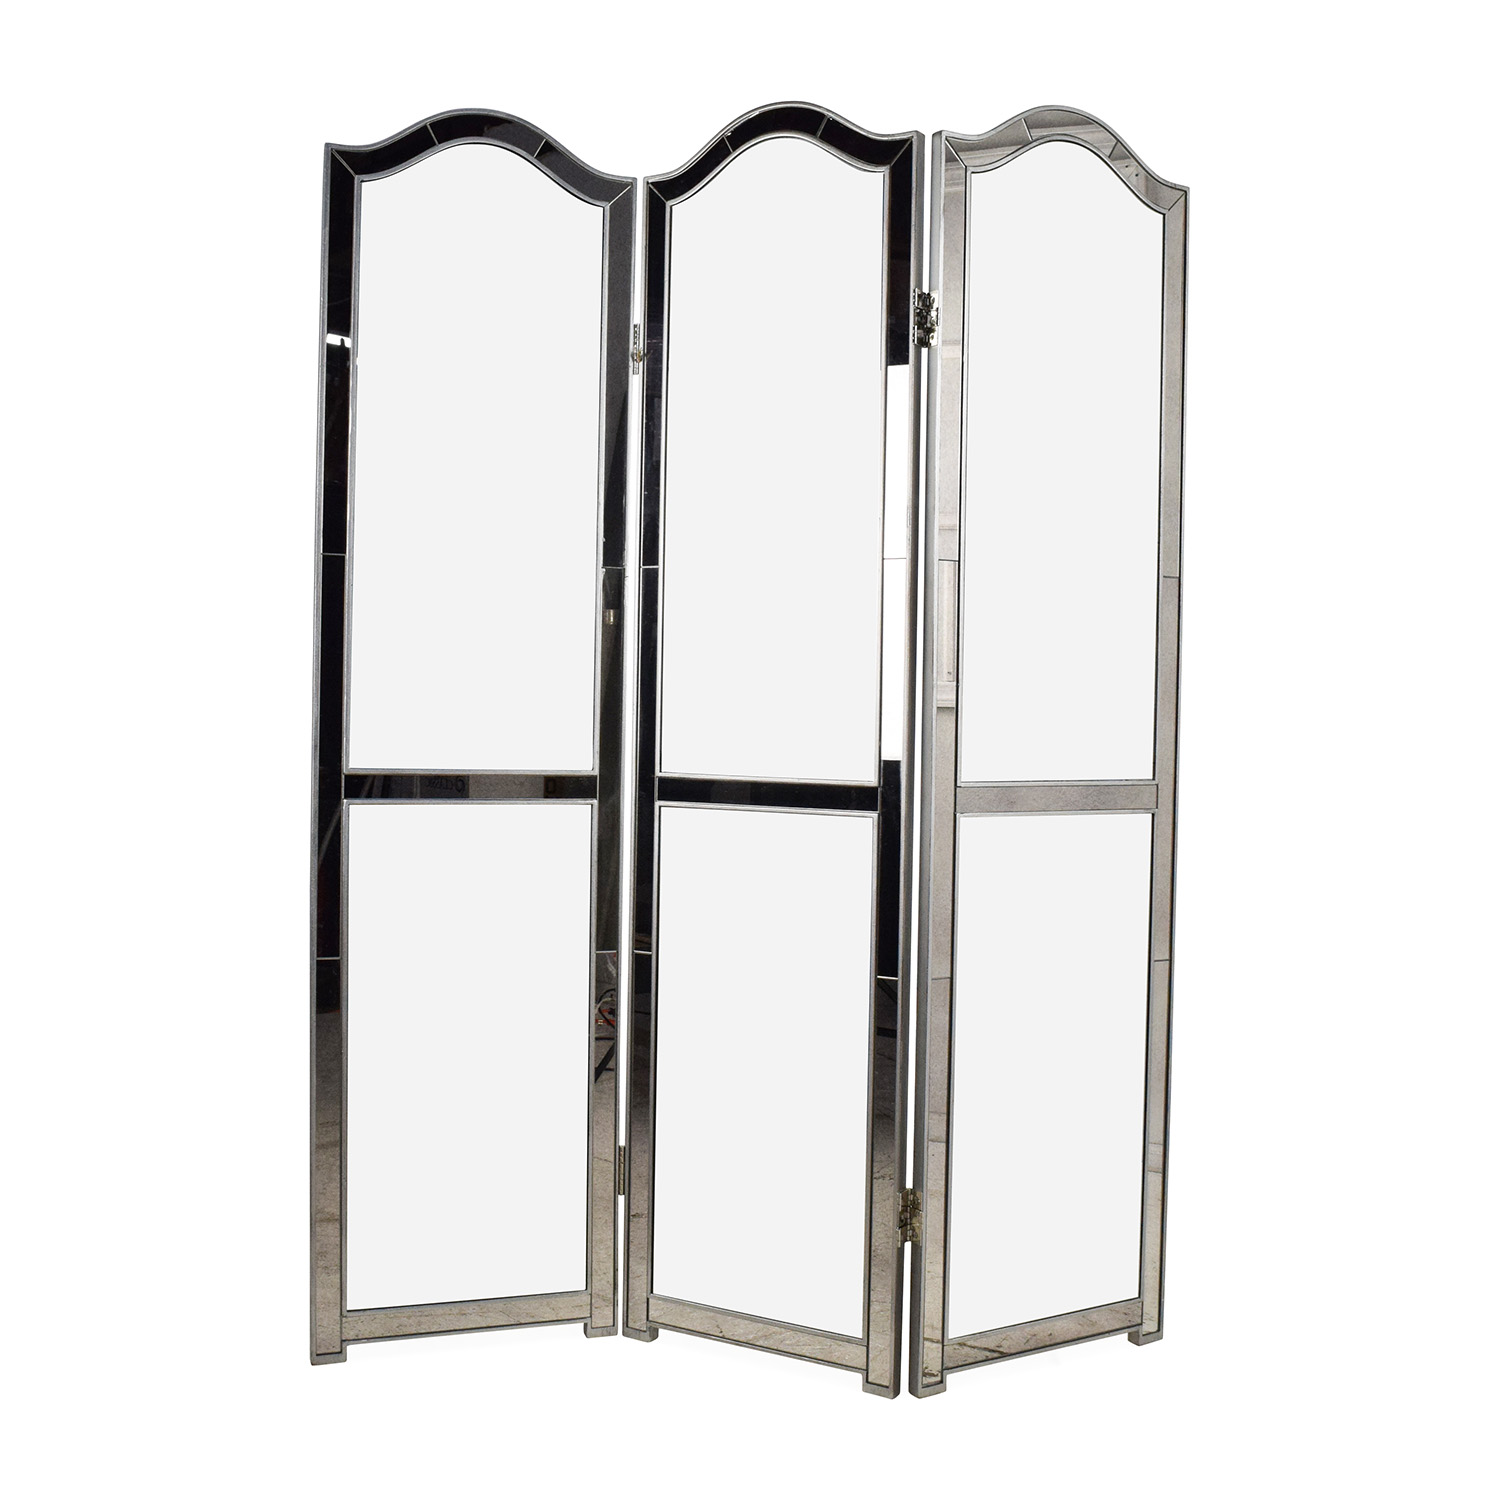 Pier 1 Imports Pier 1 Hayworth Mirrored Room Divider for sale